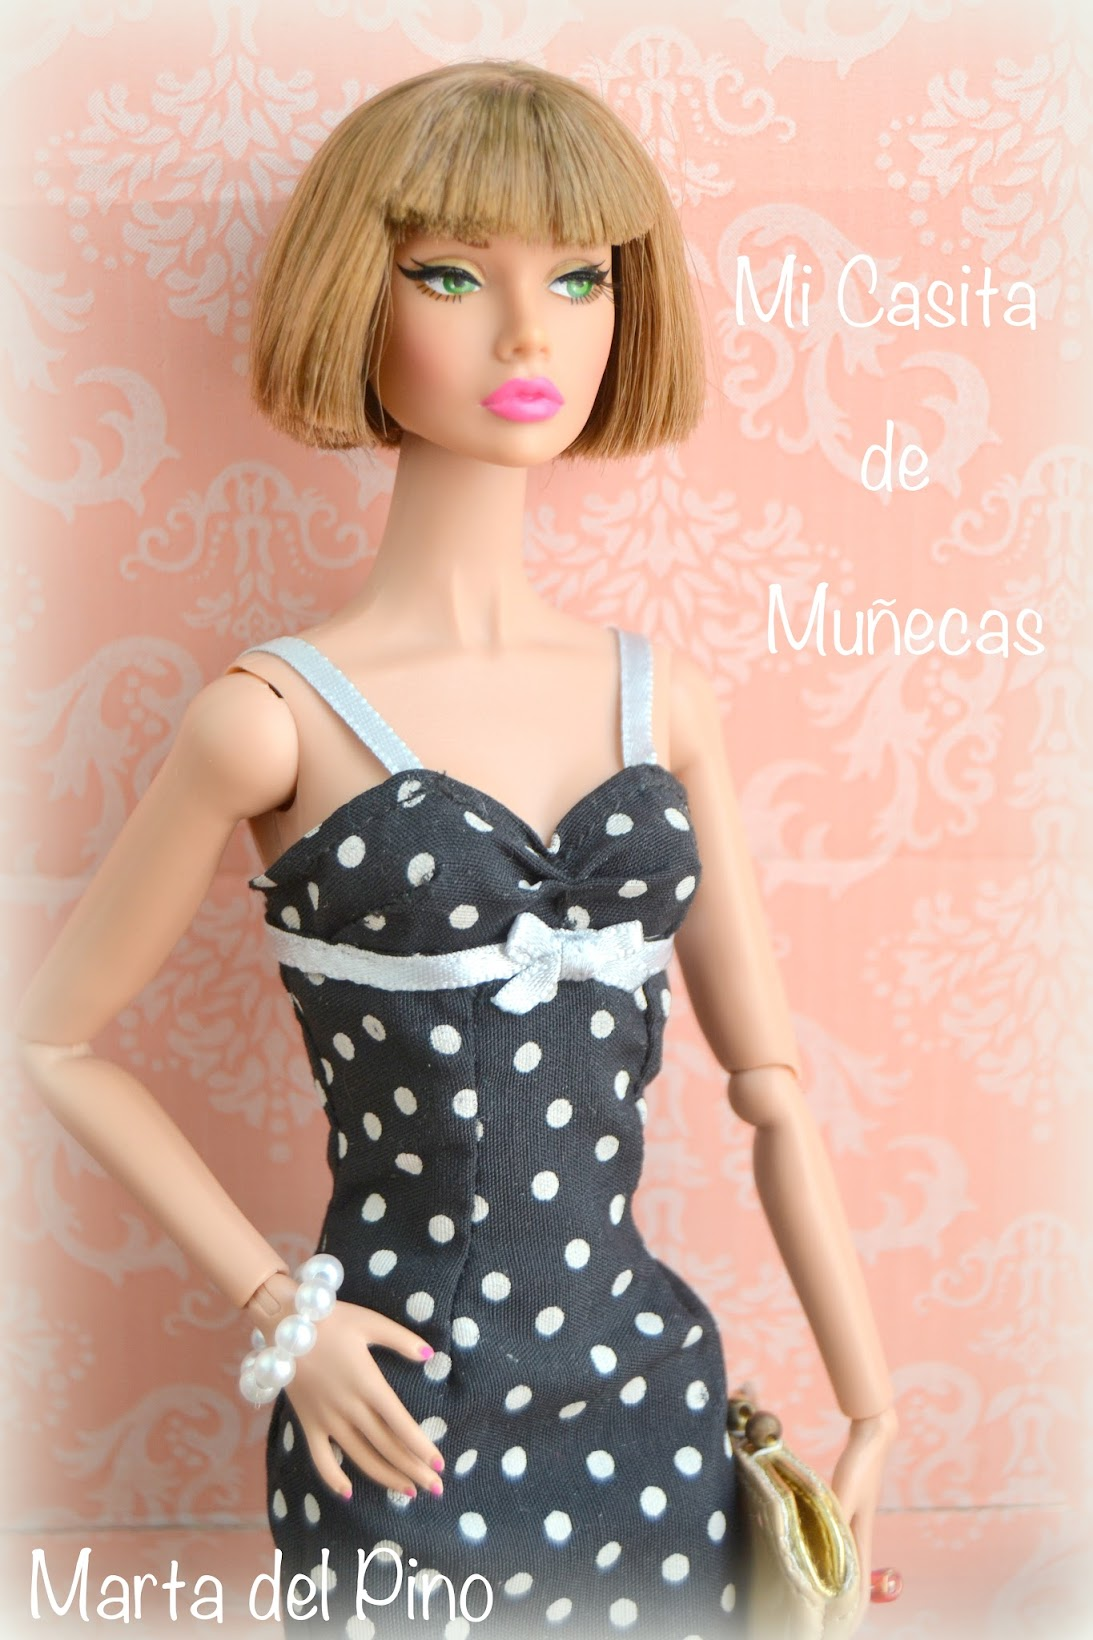 Poppy Parker Airways It, Integrity Toys, Mi casita de Muñecas, Marta del Pino